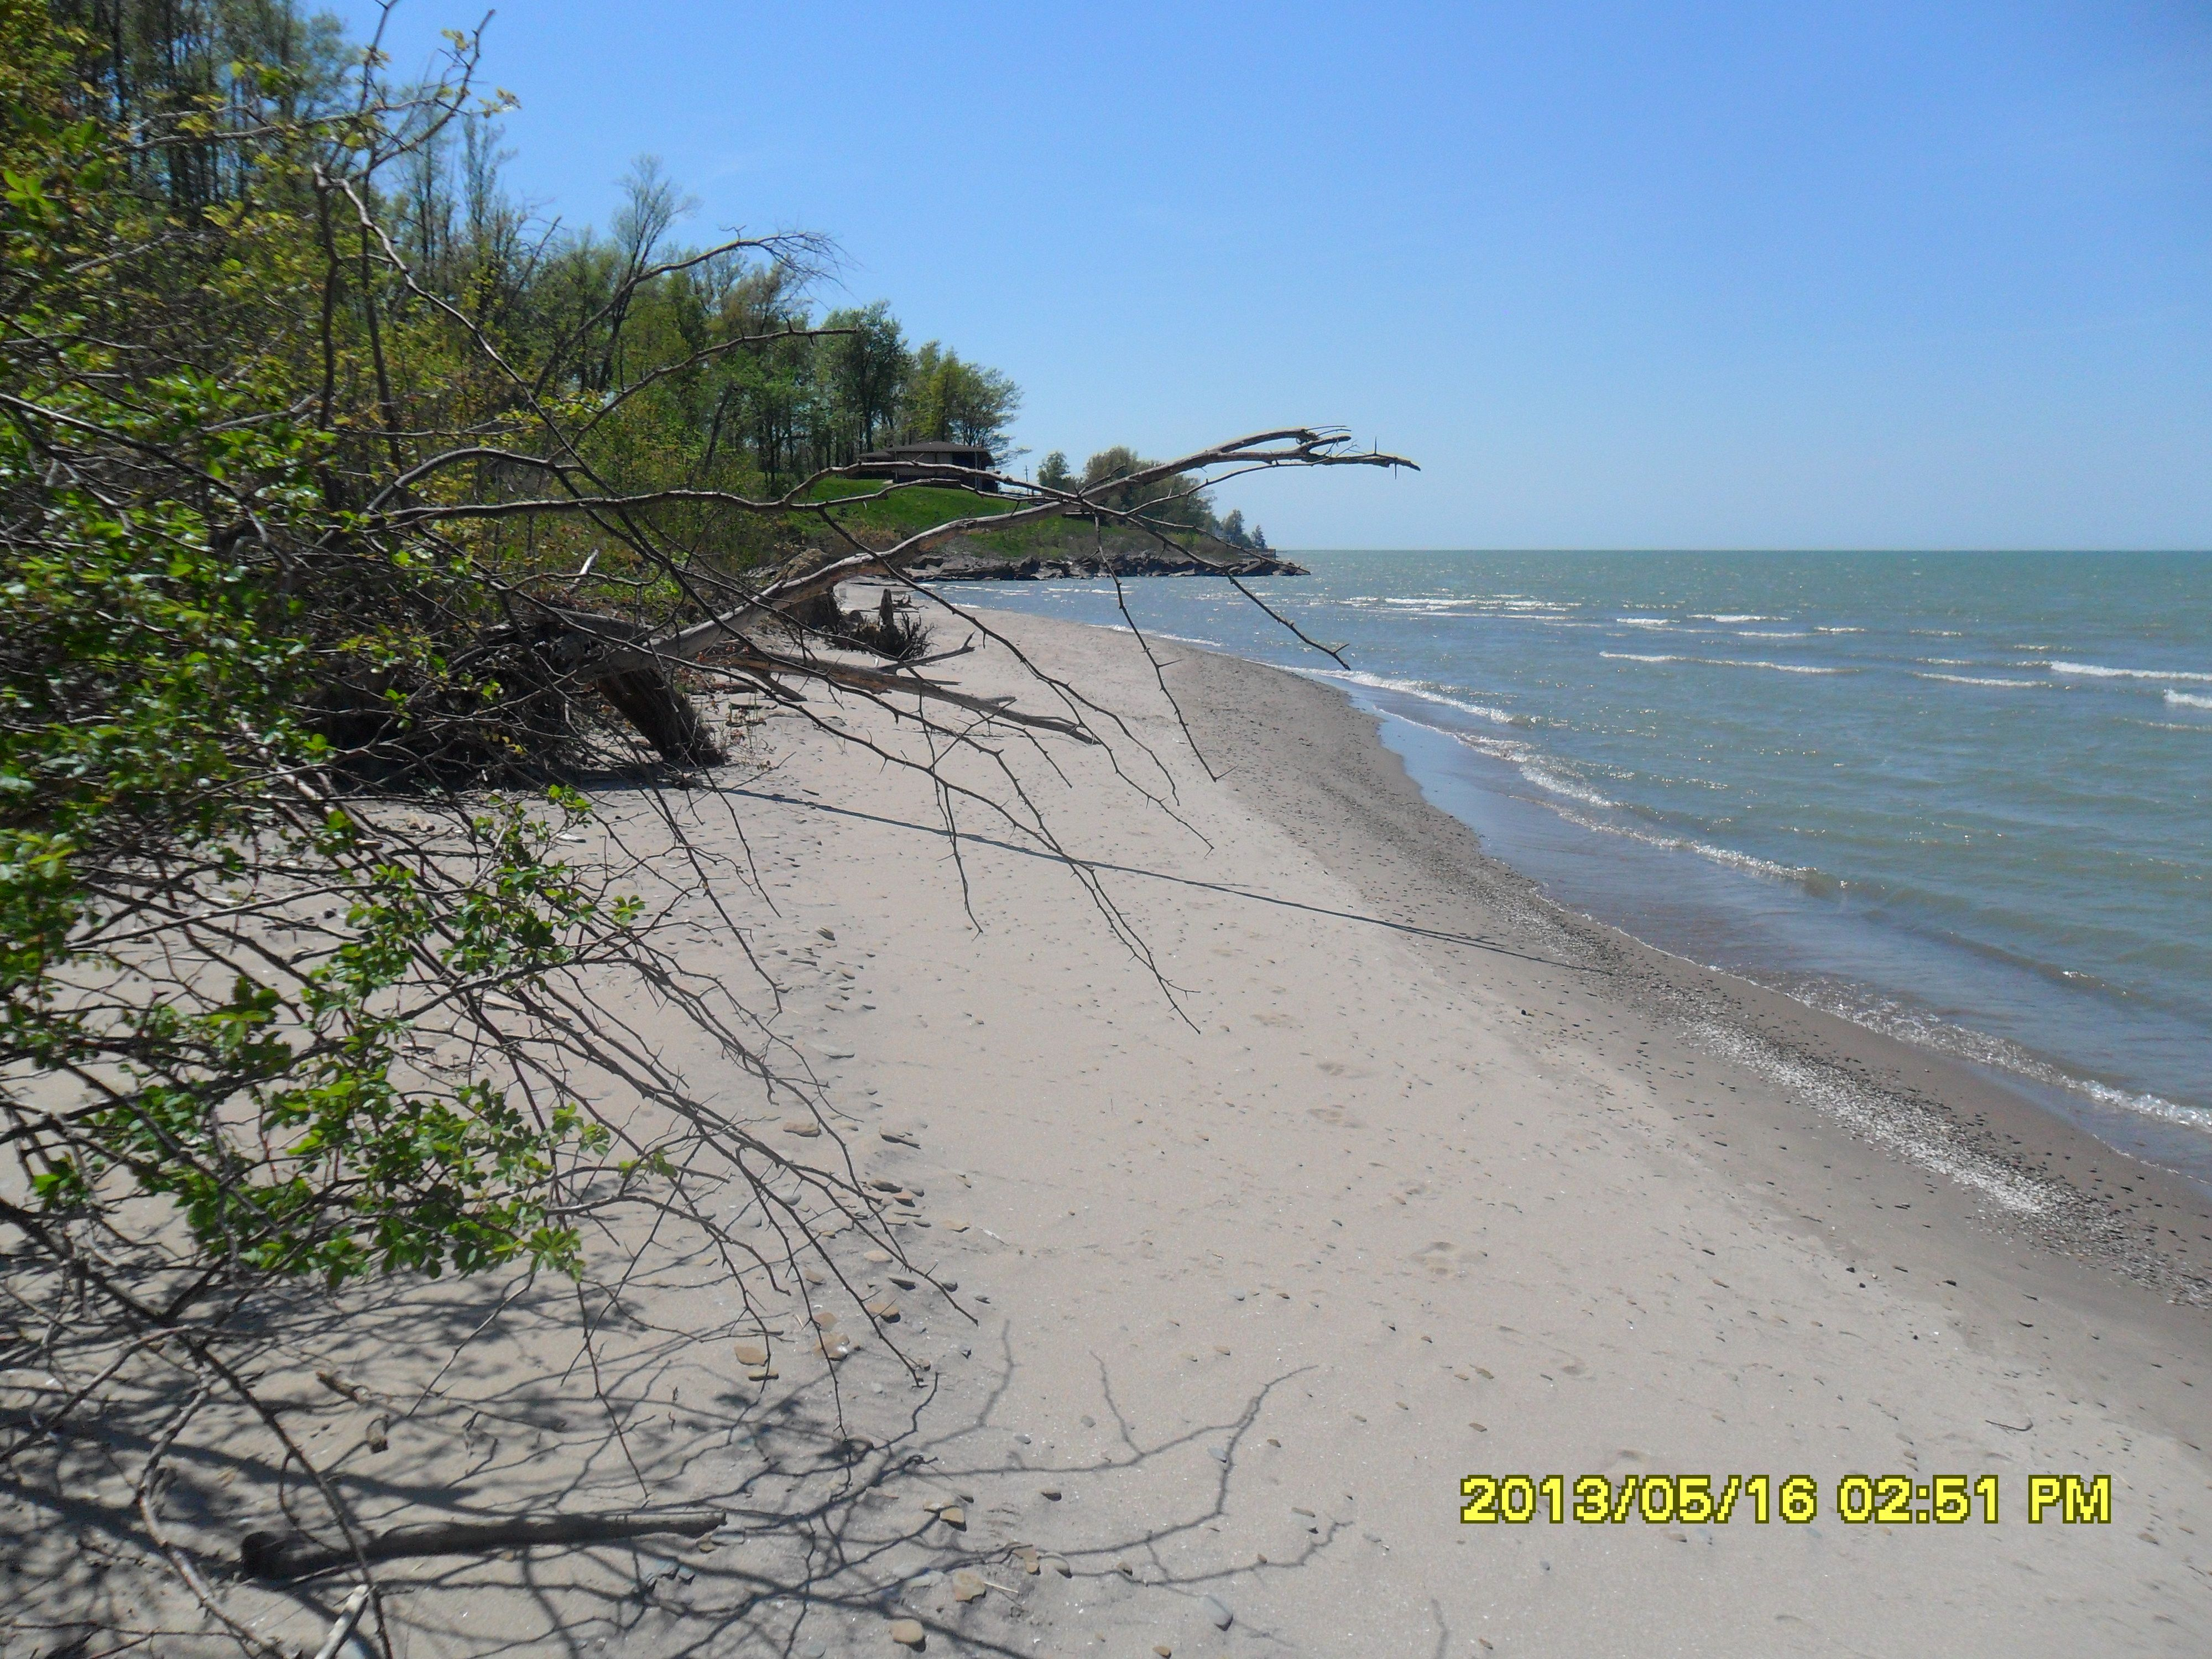 Beach At Geneva Twp Park Lake Erie Two Blocks From Our Home On The Ohio Acorn Cottage Vacation Al Www Vrbo 413024